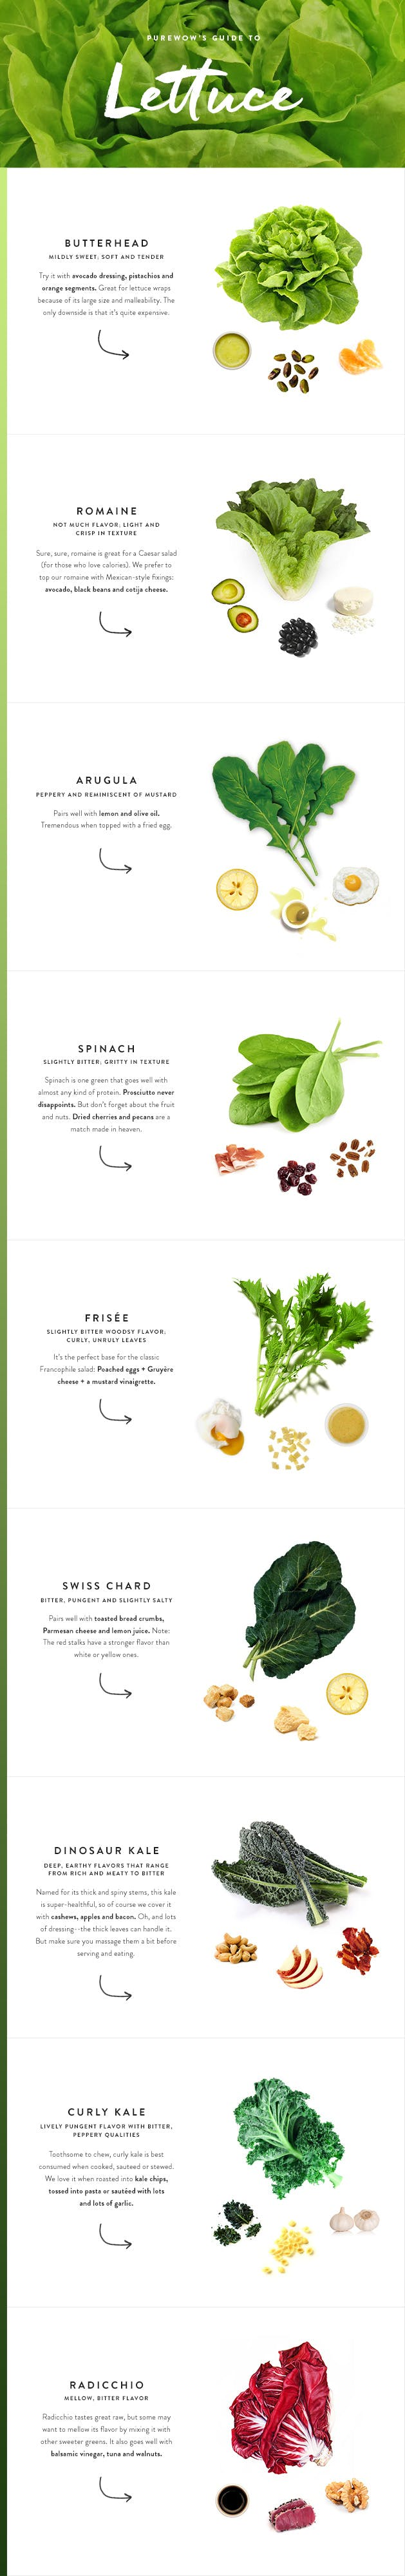 PureWow Guide To Lettuce Infographic